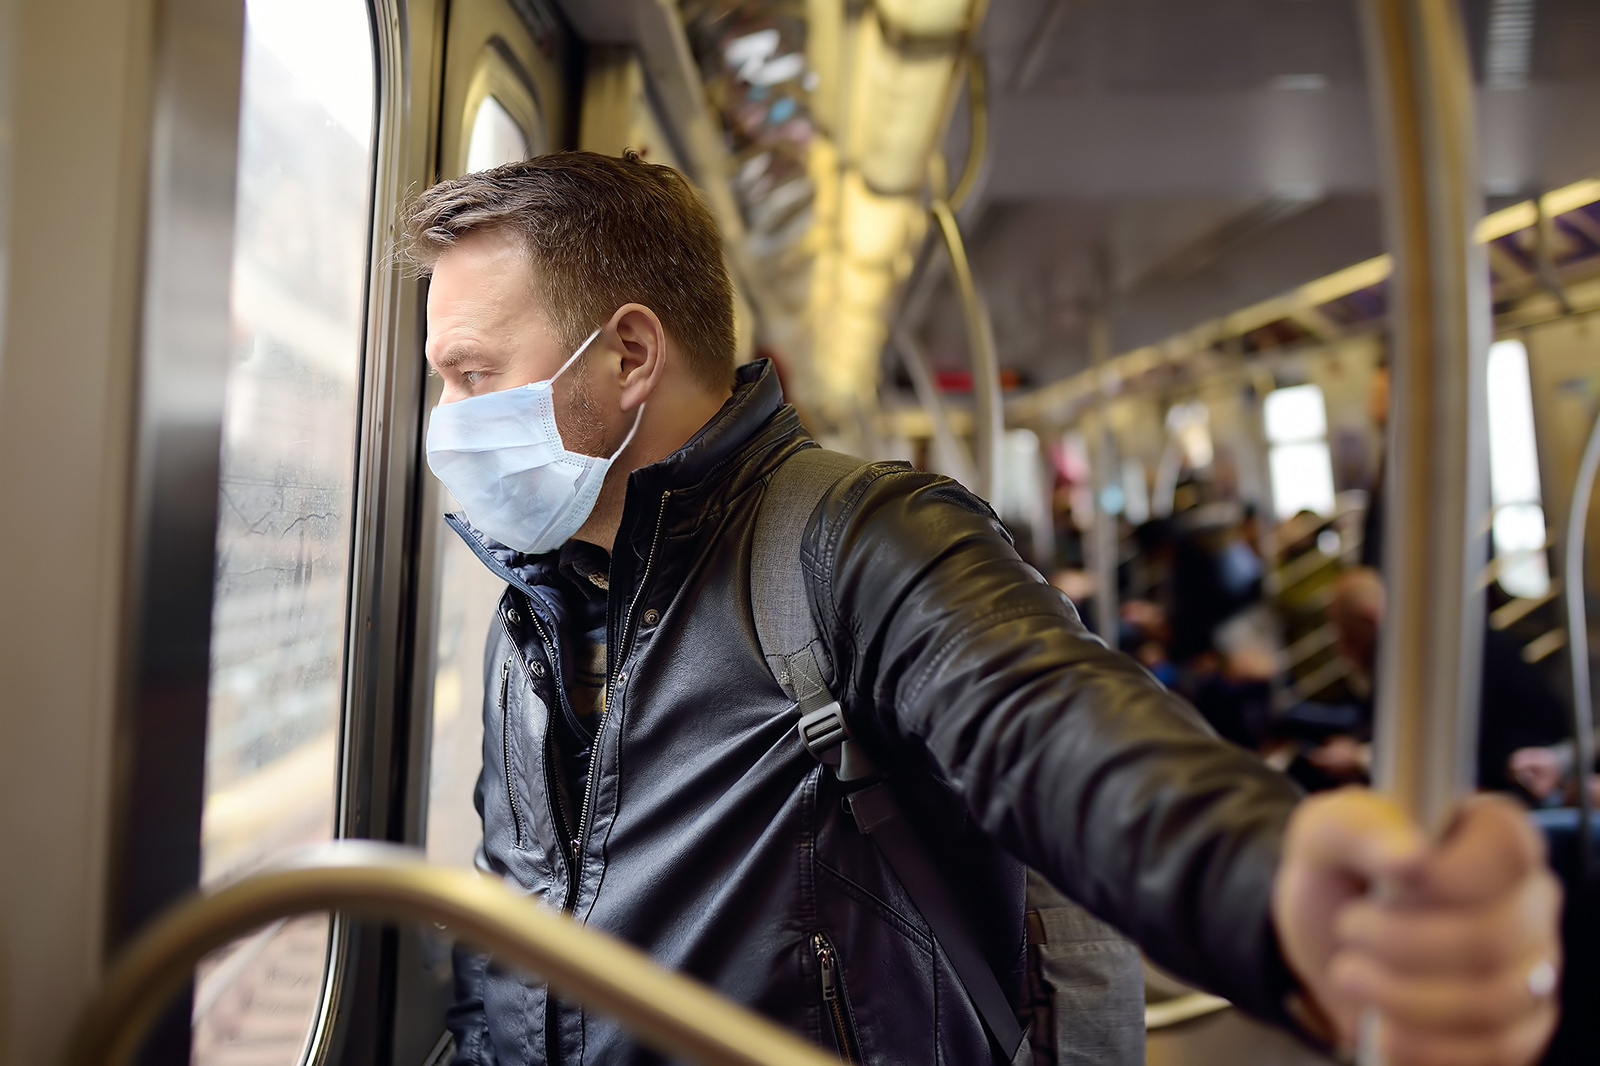 Major Google Maps update will show you the severity of coronavirus outbreaks